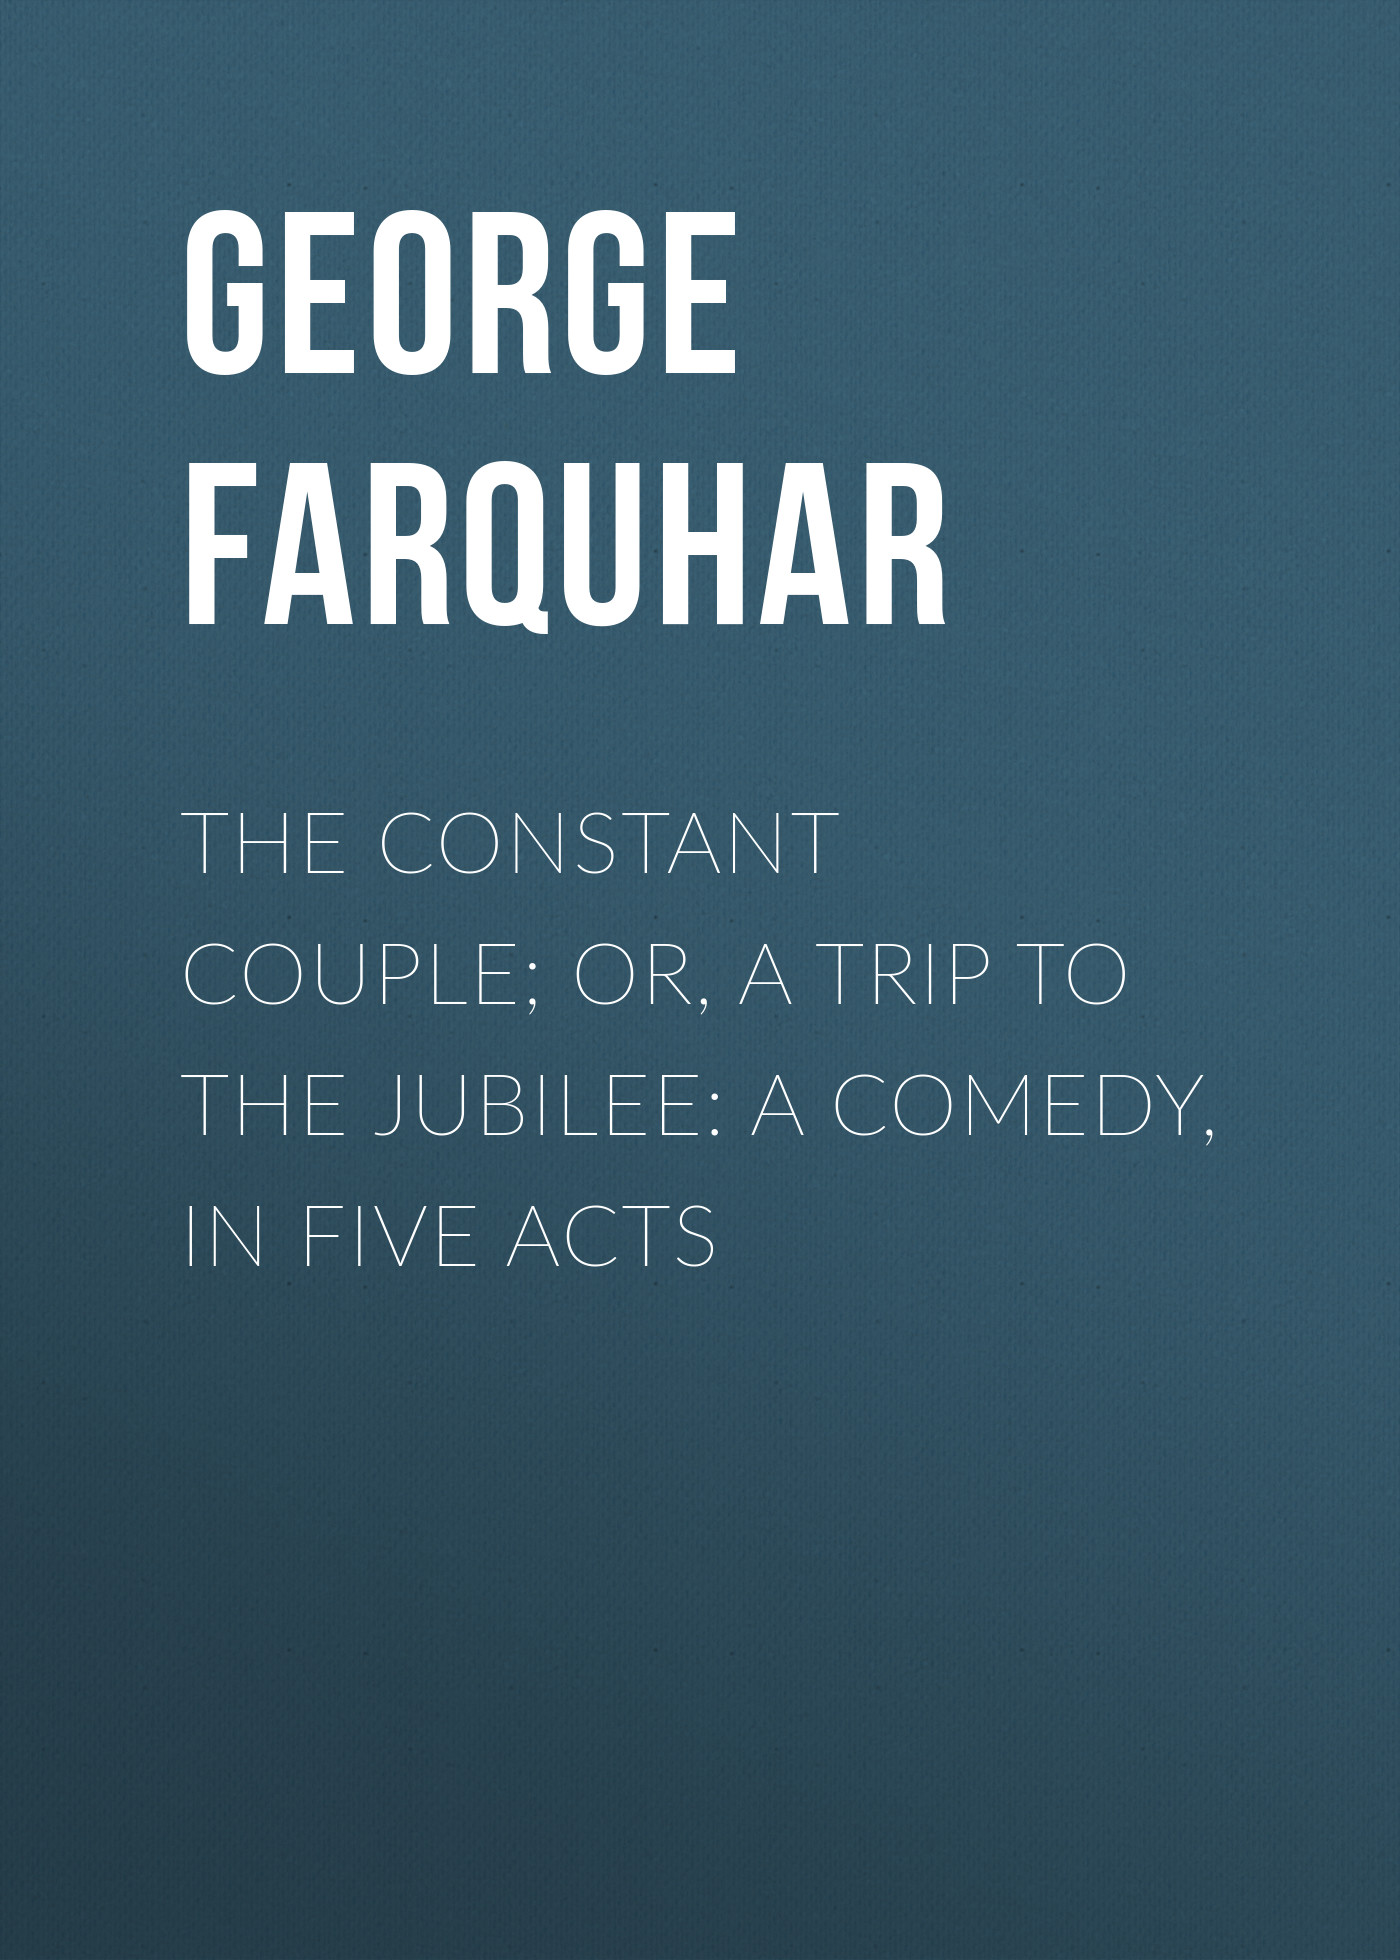 George Farquhar The Constant Couple; Or, A Trip to the Jubilee: A Comedy, in Five Acts george farquhar the beaux stratagem